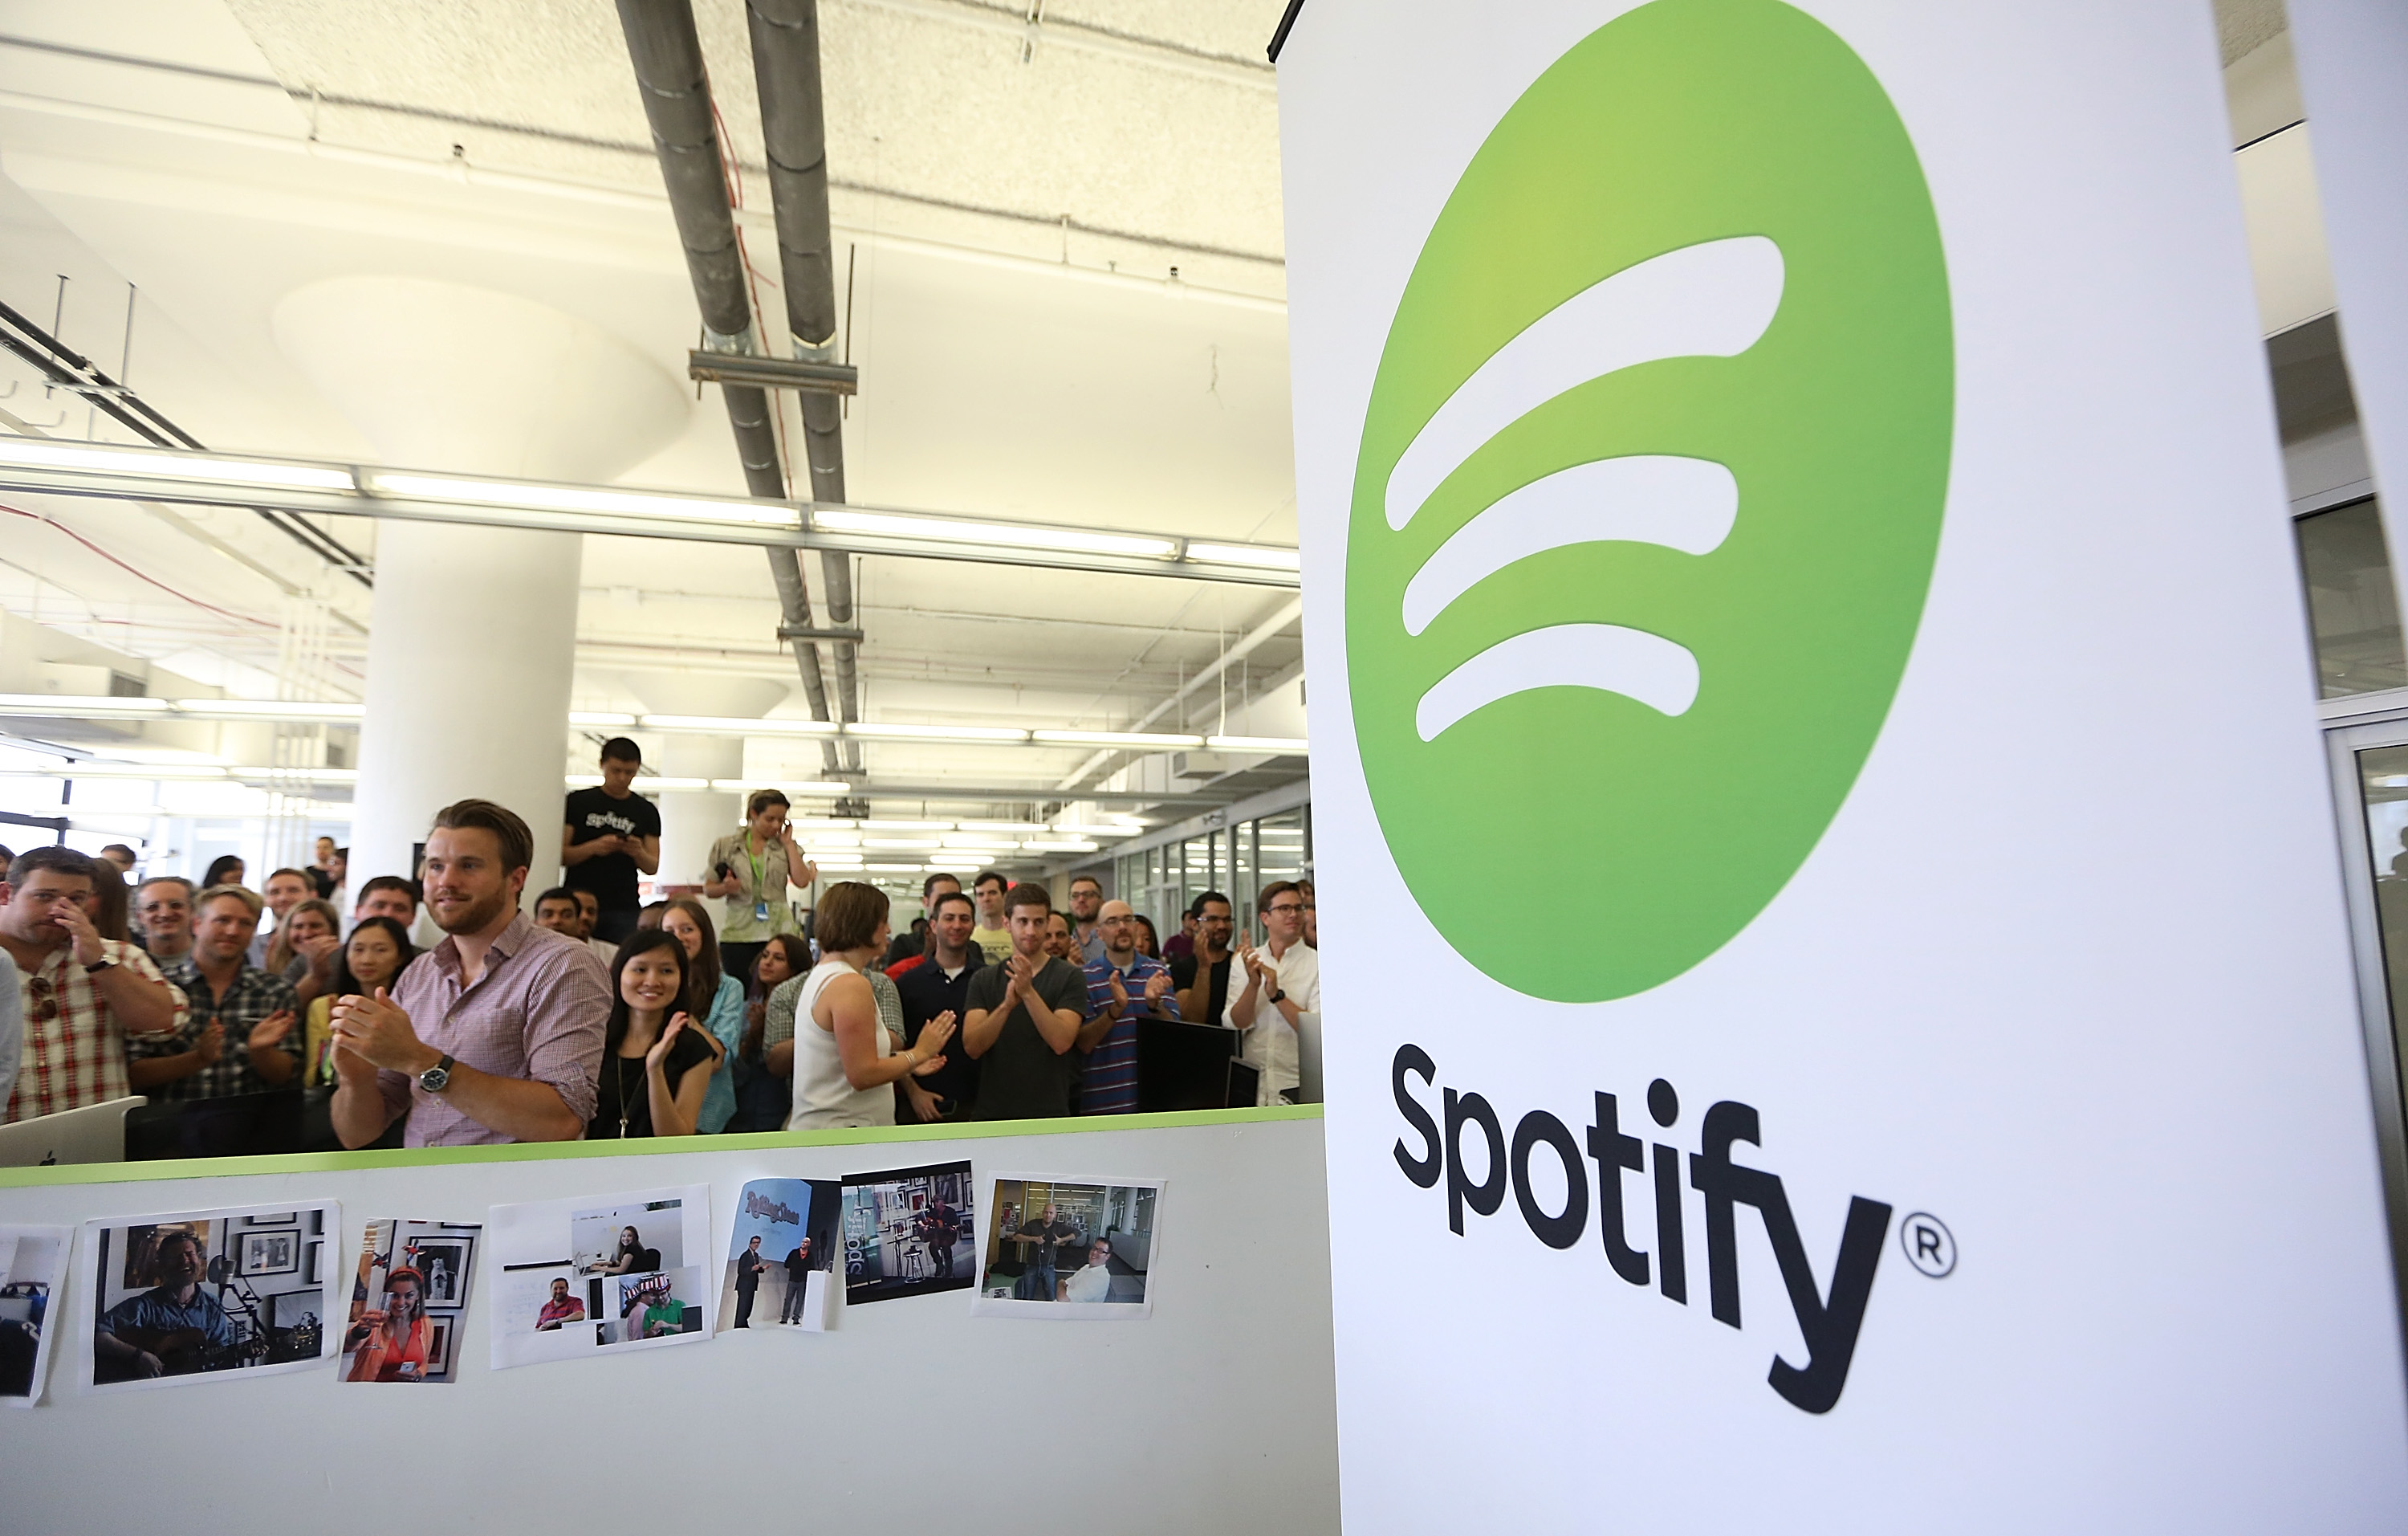 People gather in Spotify offices following a press conference on June 27, 2013 in New York City.